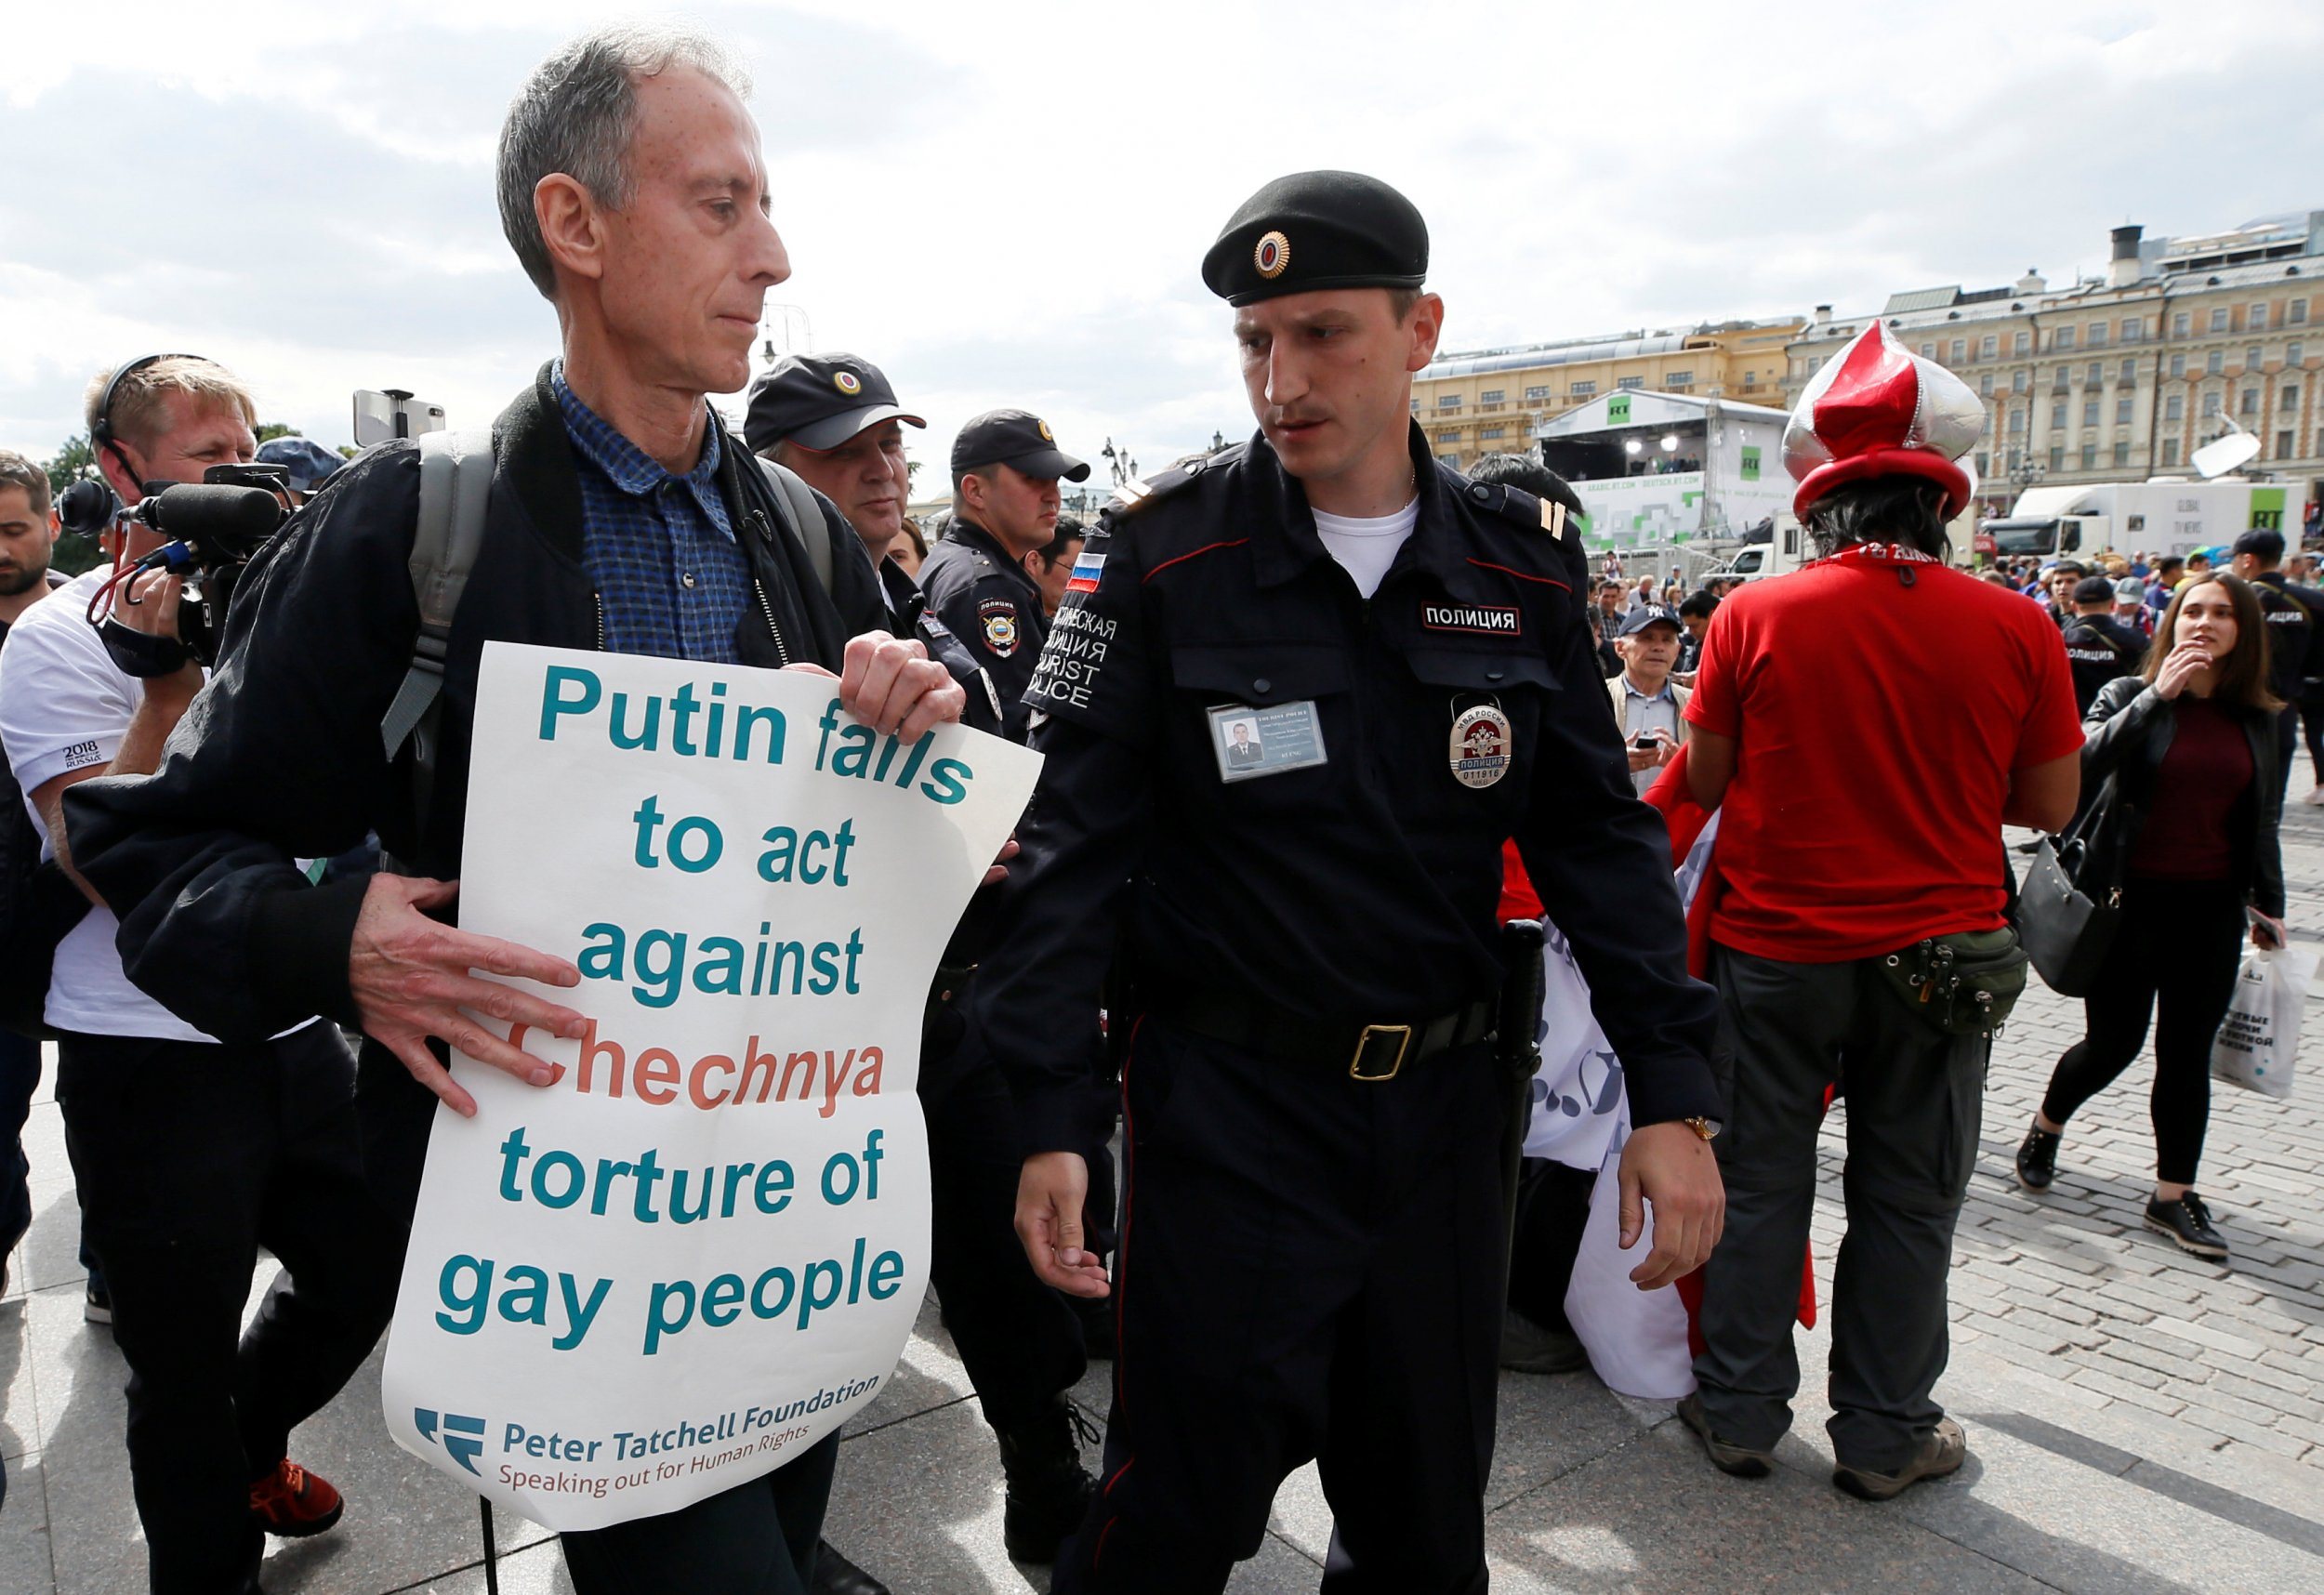 2018-06-14T133603Z_1_LYNXMPEE5D17I_RTROPTP_4_SOCCER-WORLDCUP-RUSSIA-LGBT-DETENTION